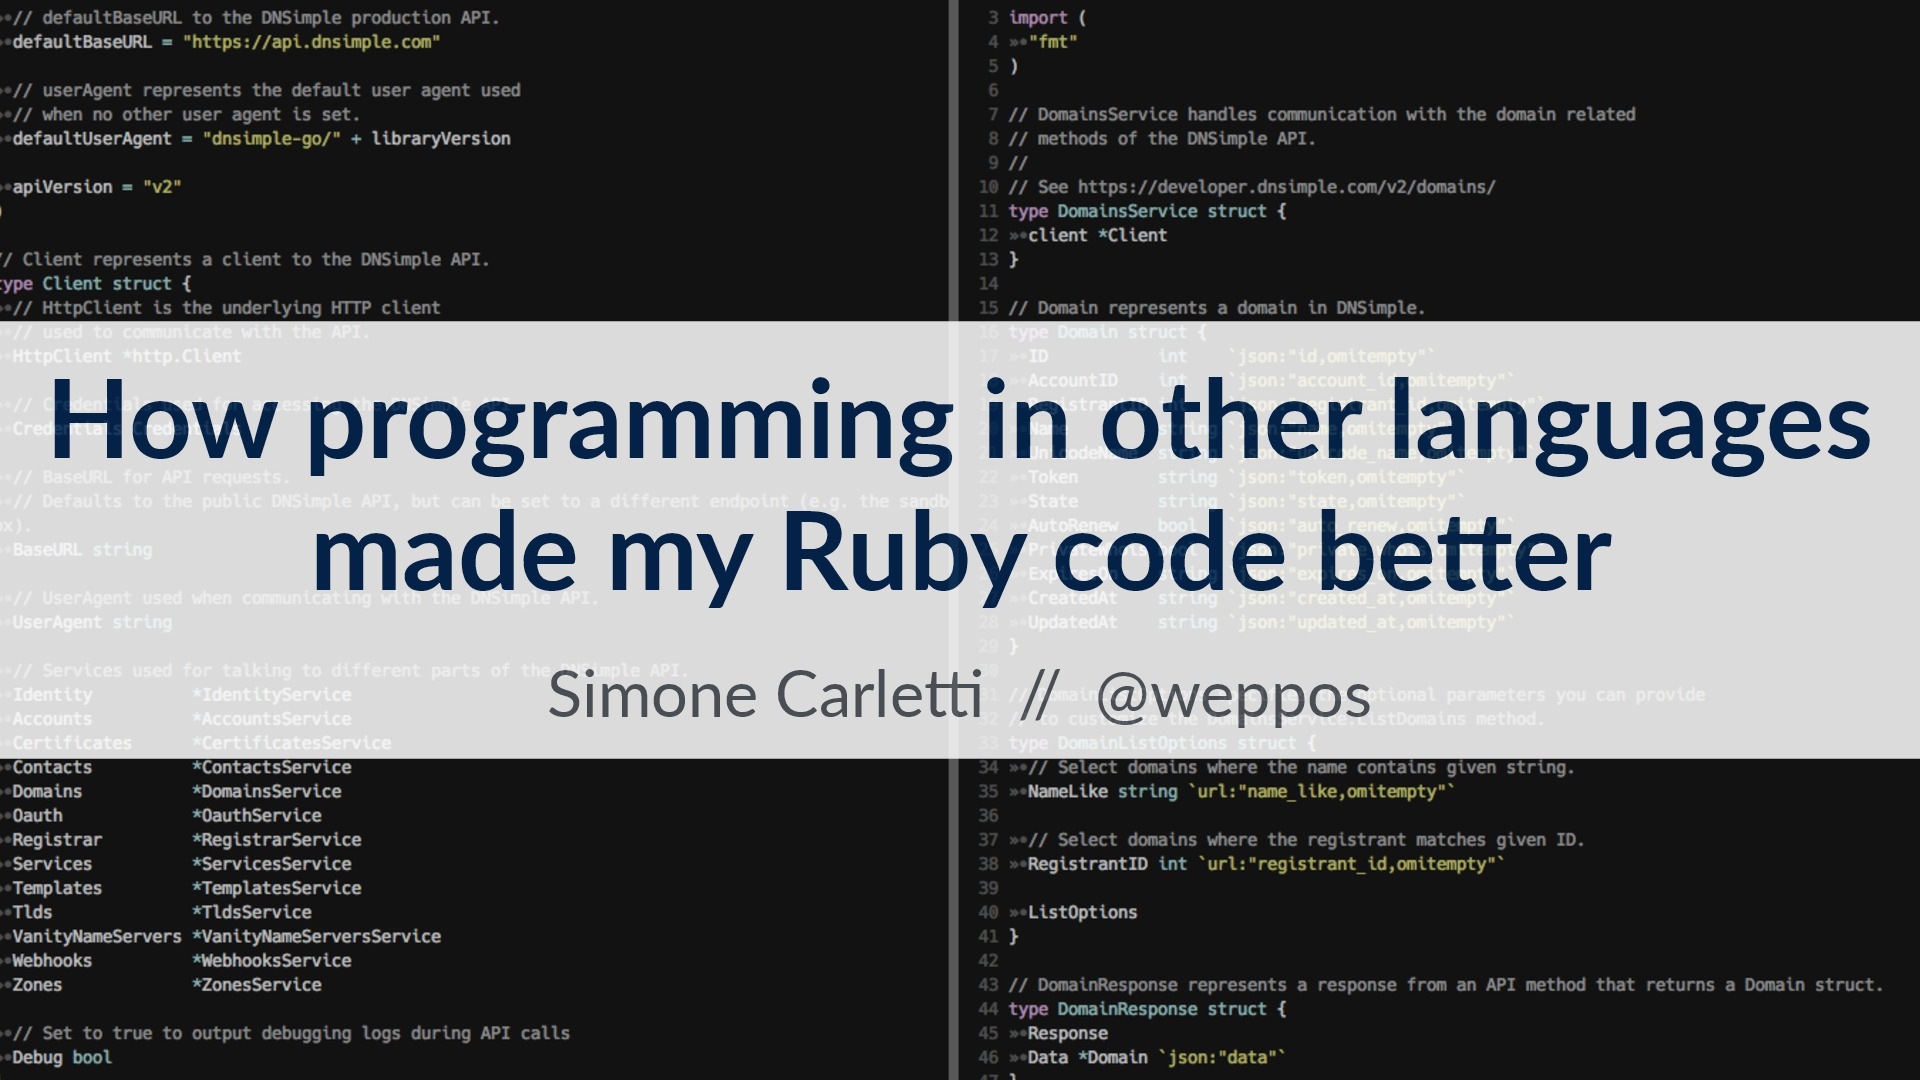 How programming in other languages 